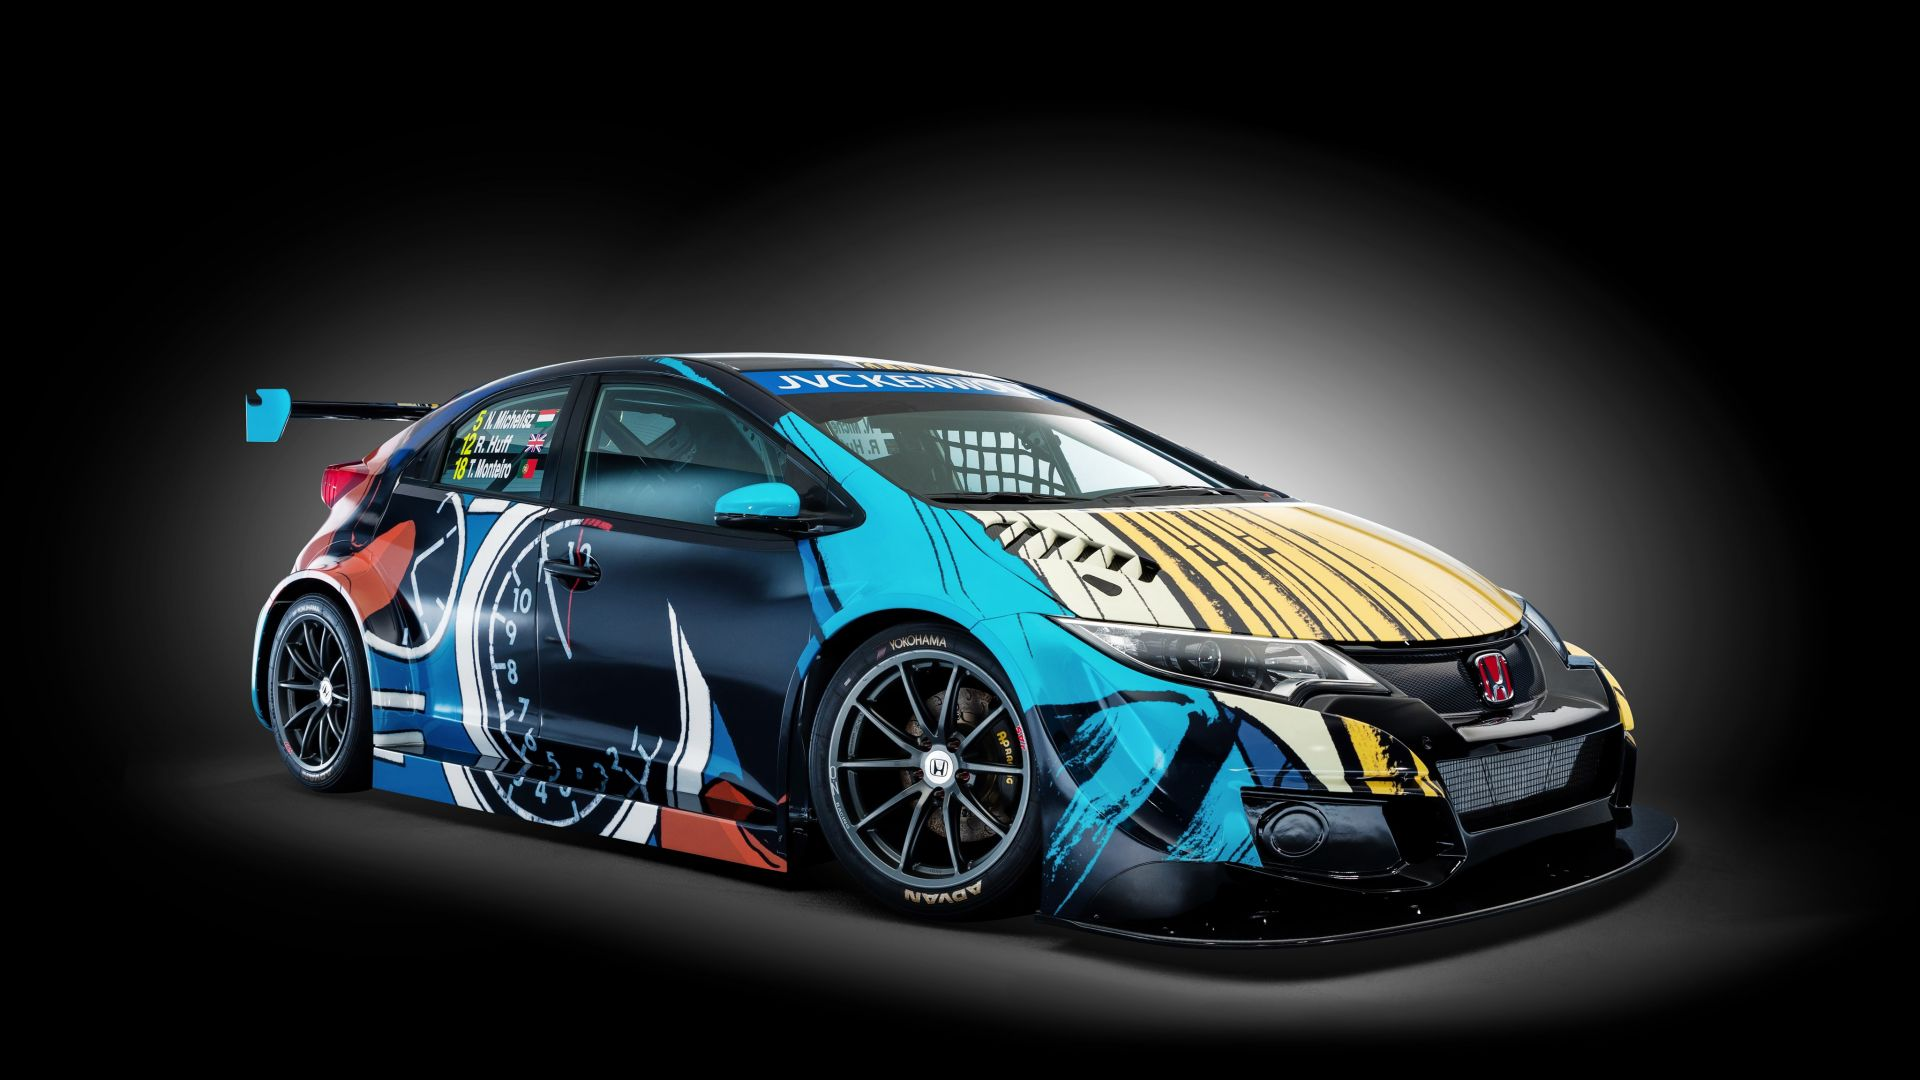 Хонда цивик, арт Джин Гратон, Honda Civic WTCC, Art Car Jean Graton (horizontal)